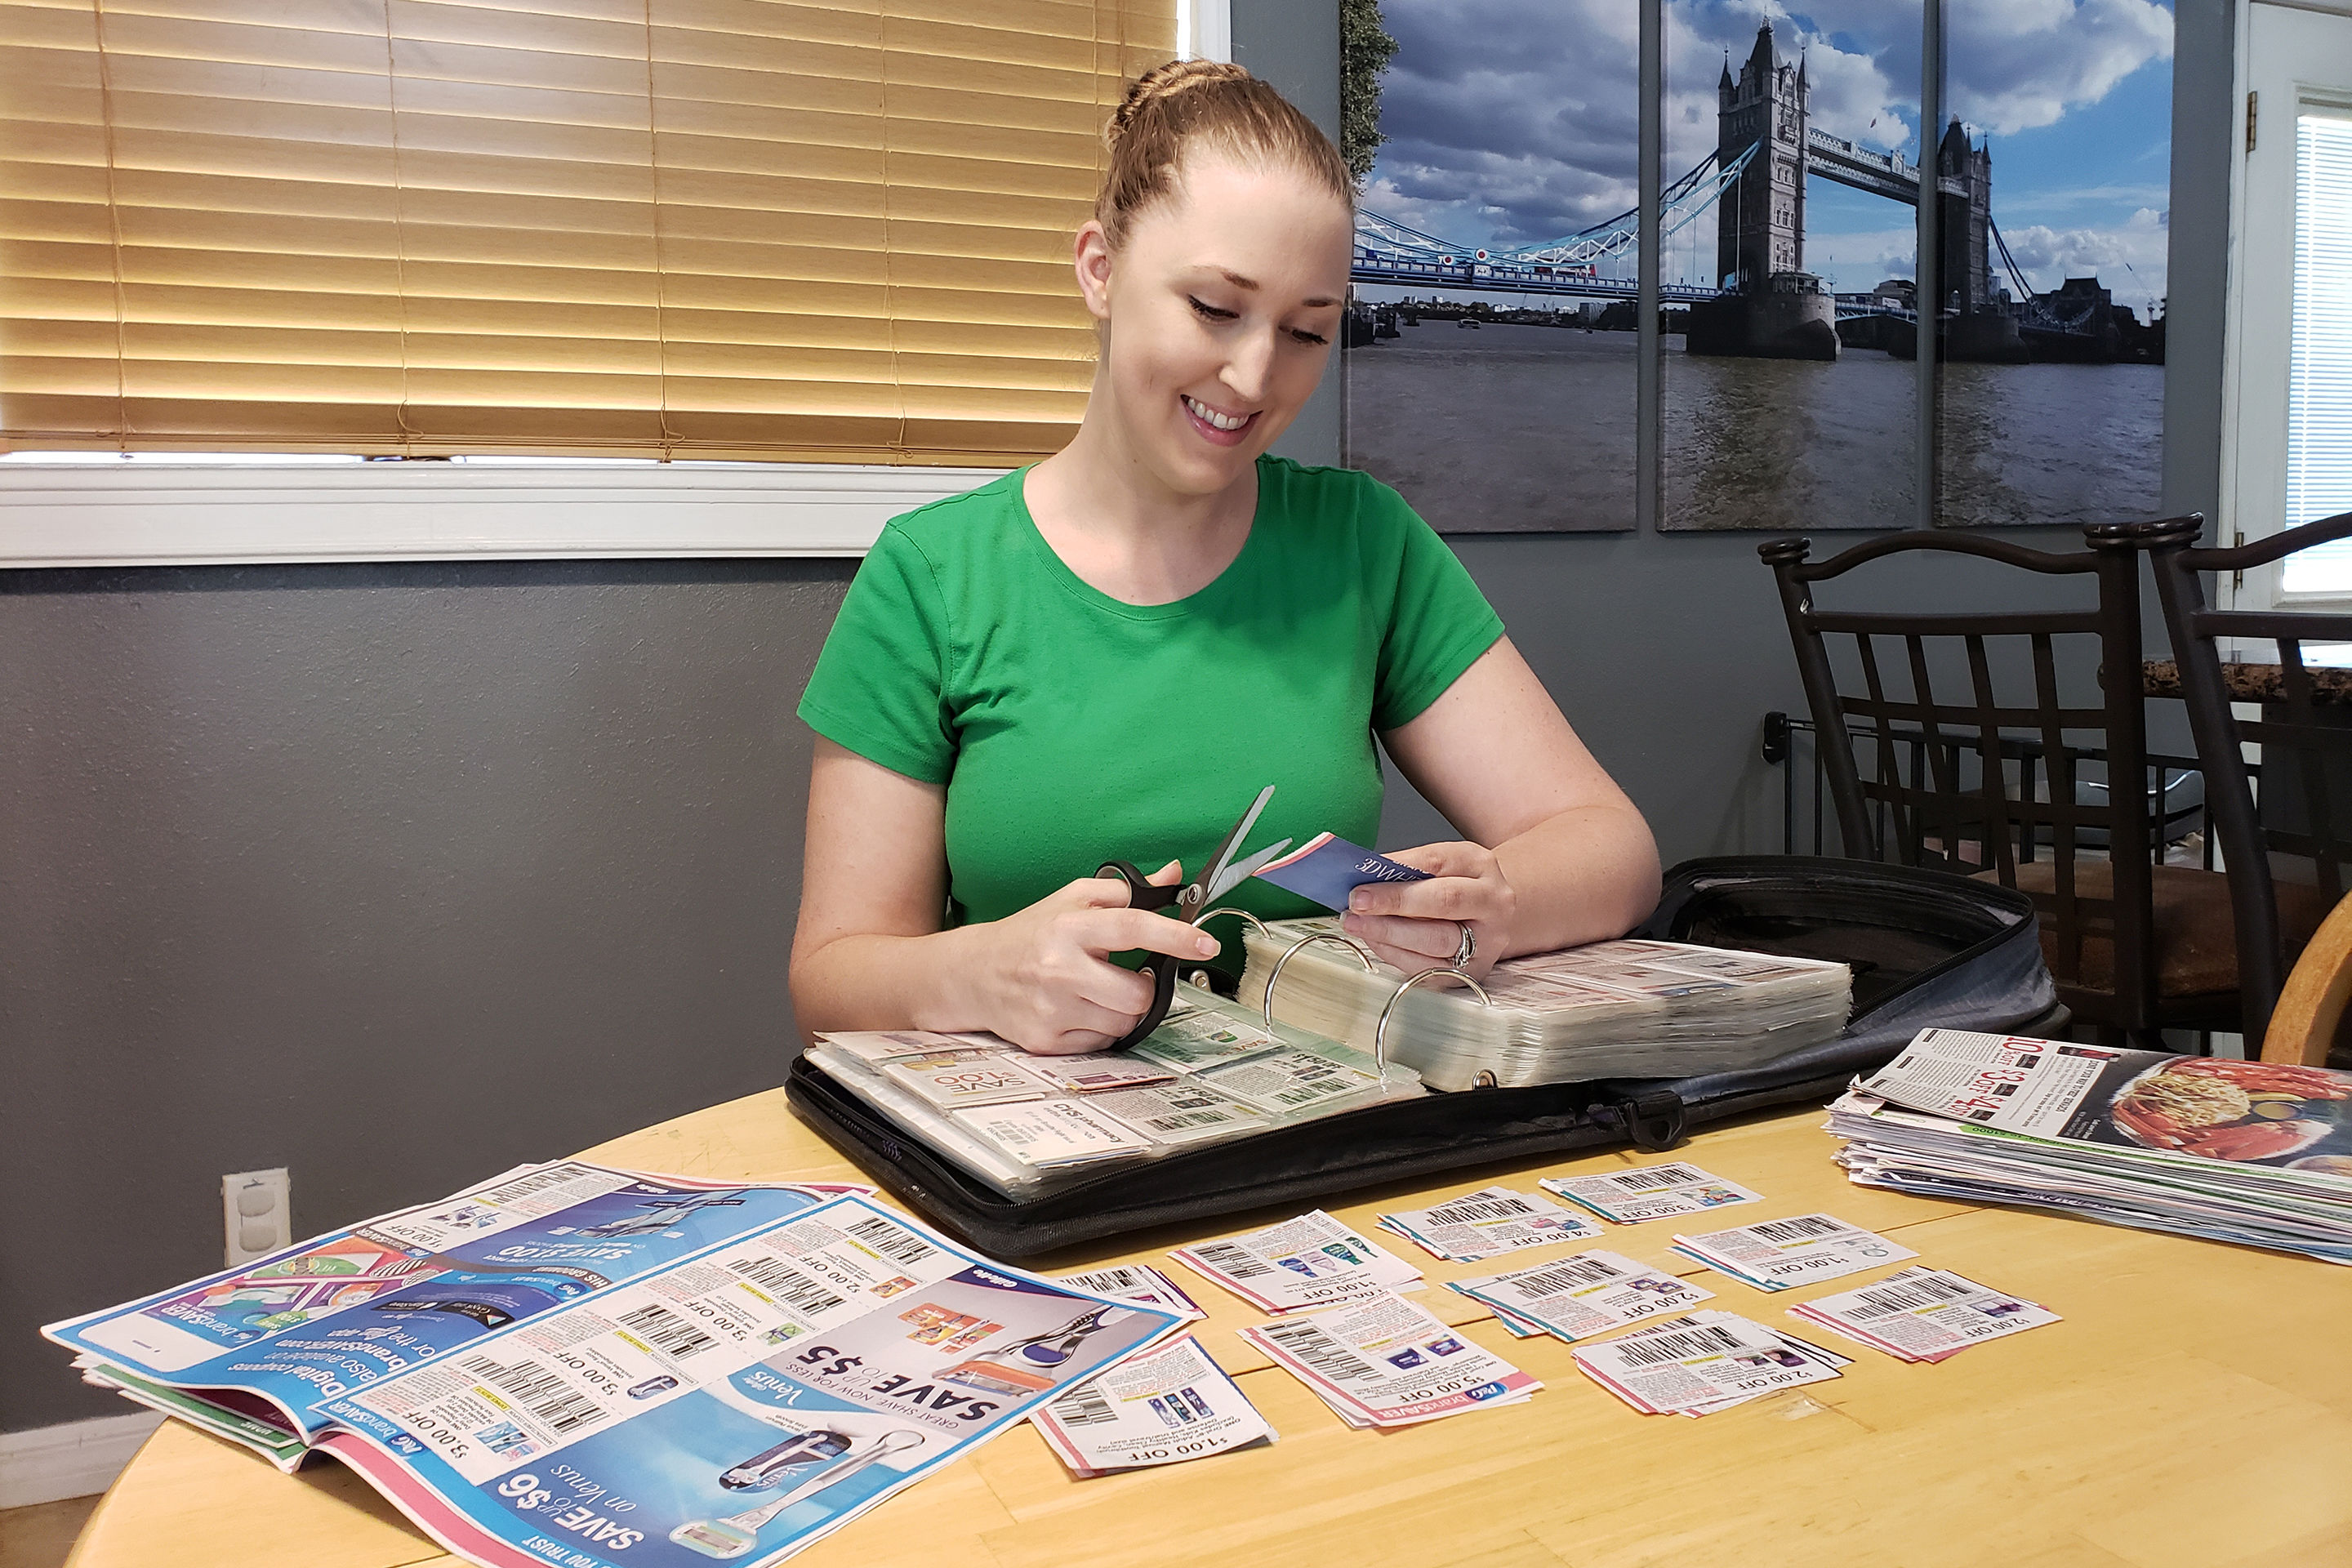 This 31-Year-Old Saves $8,000 a Year Clipping Coupons. Here Are Her Secrets to Success